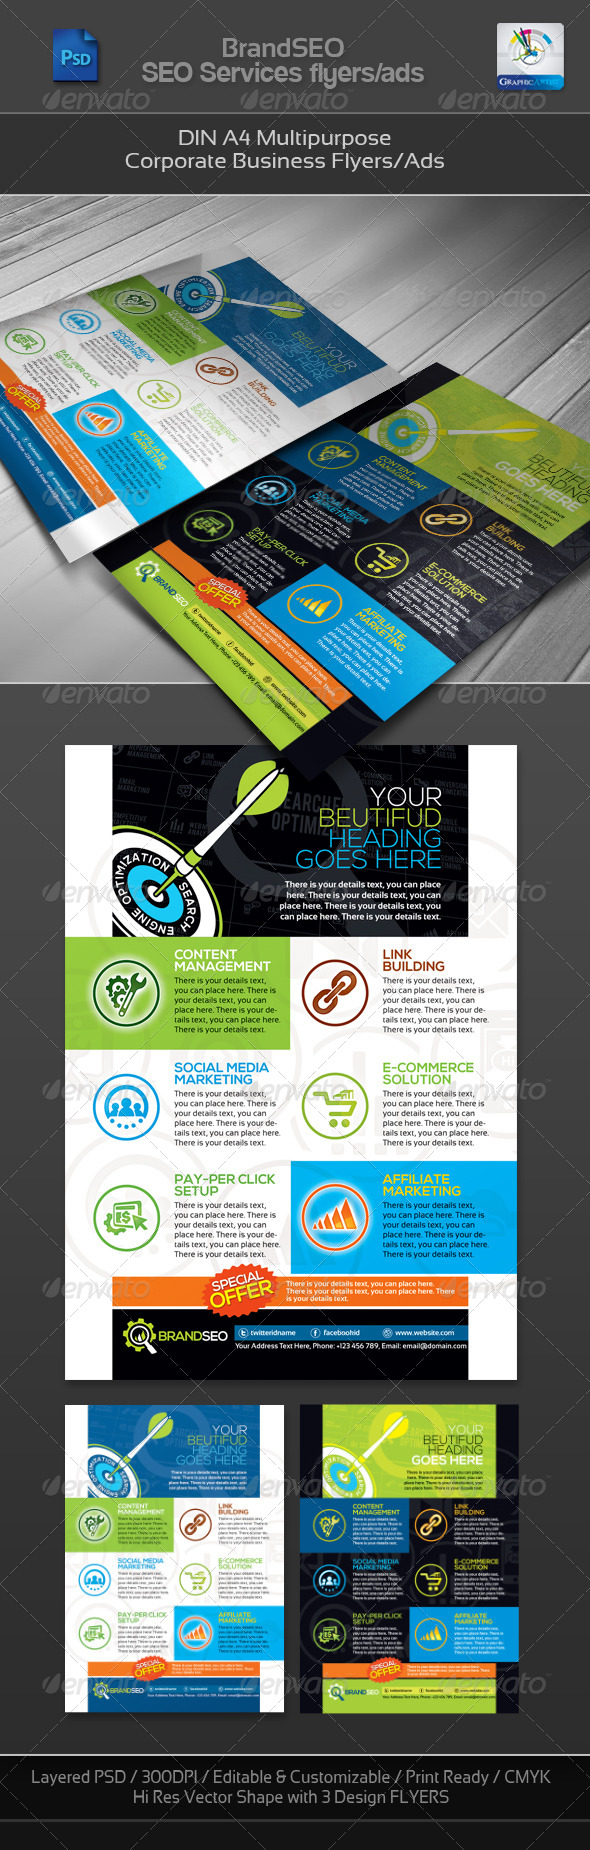 GraphicRiver BrandSEO Corporate SEO Business Flyer Ad 4267406